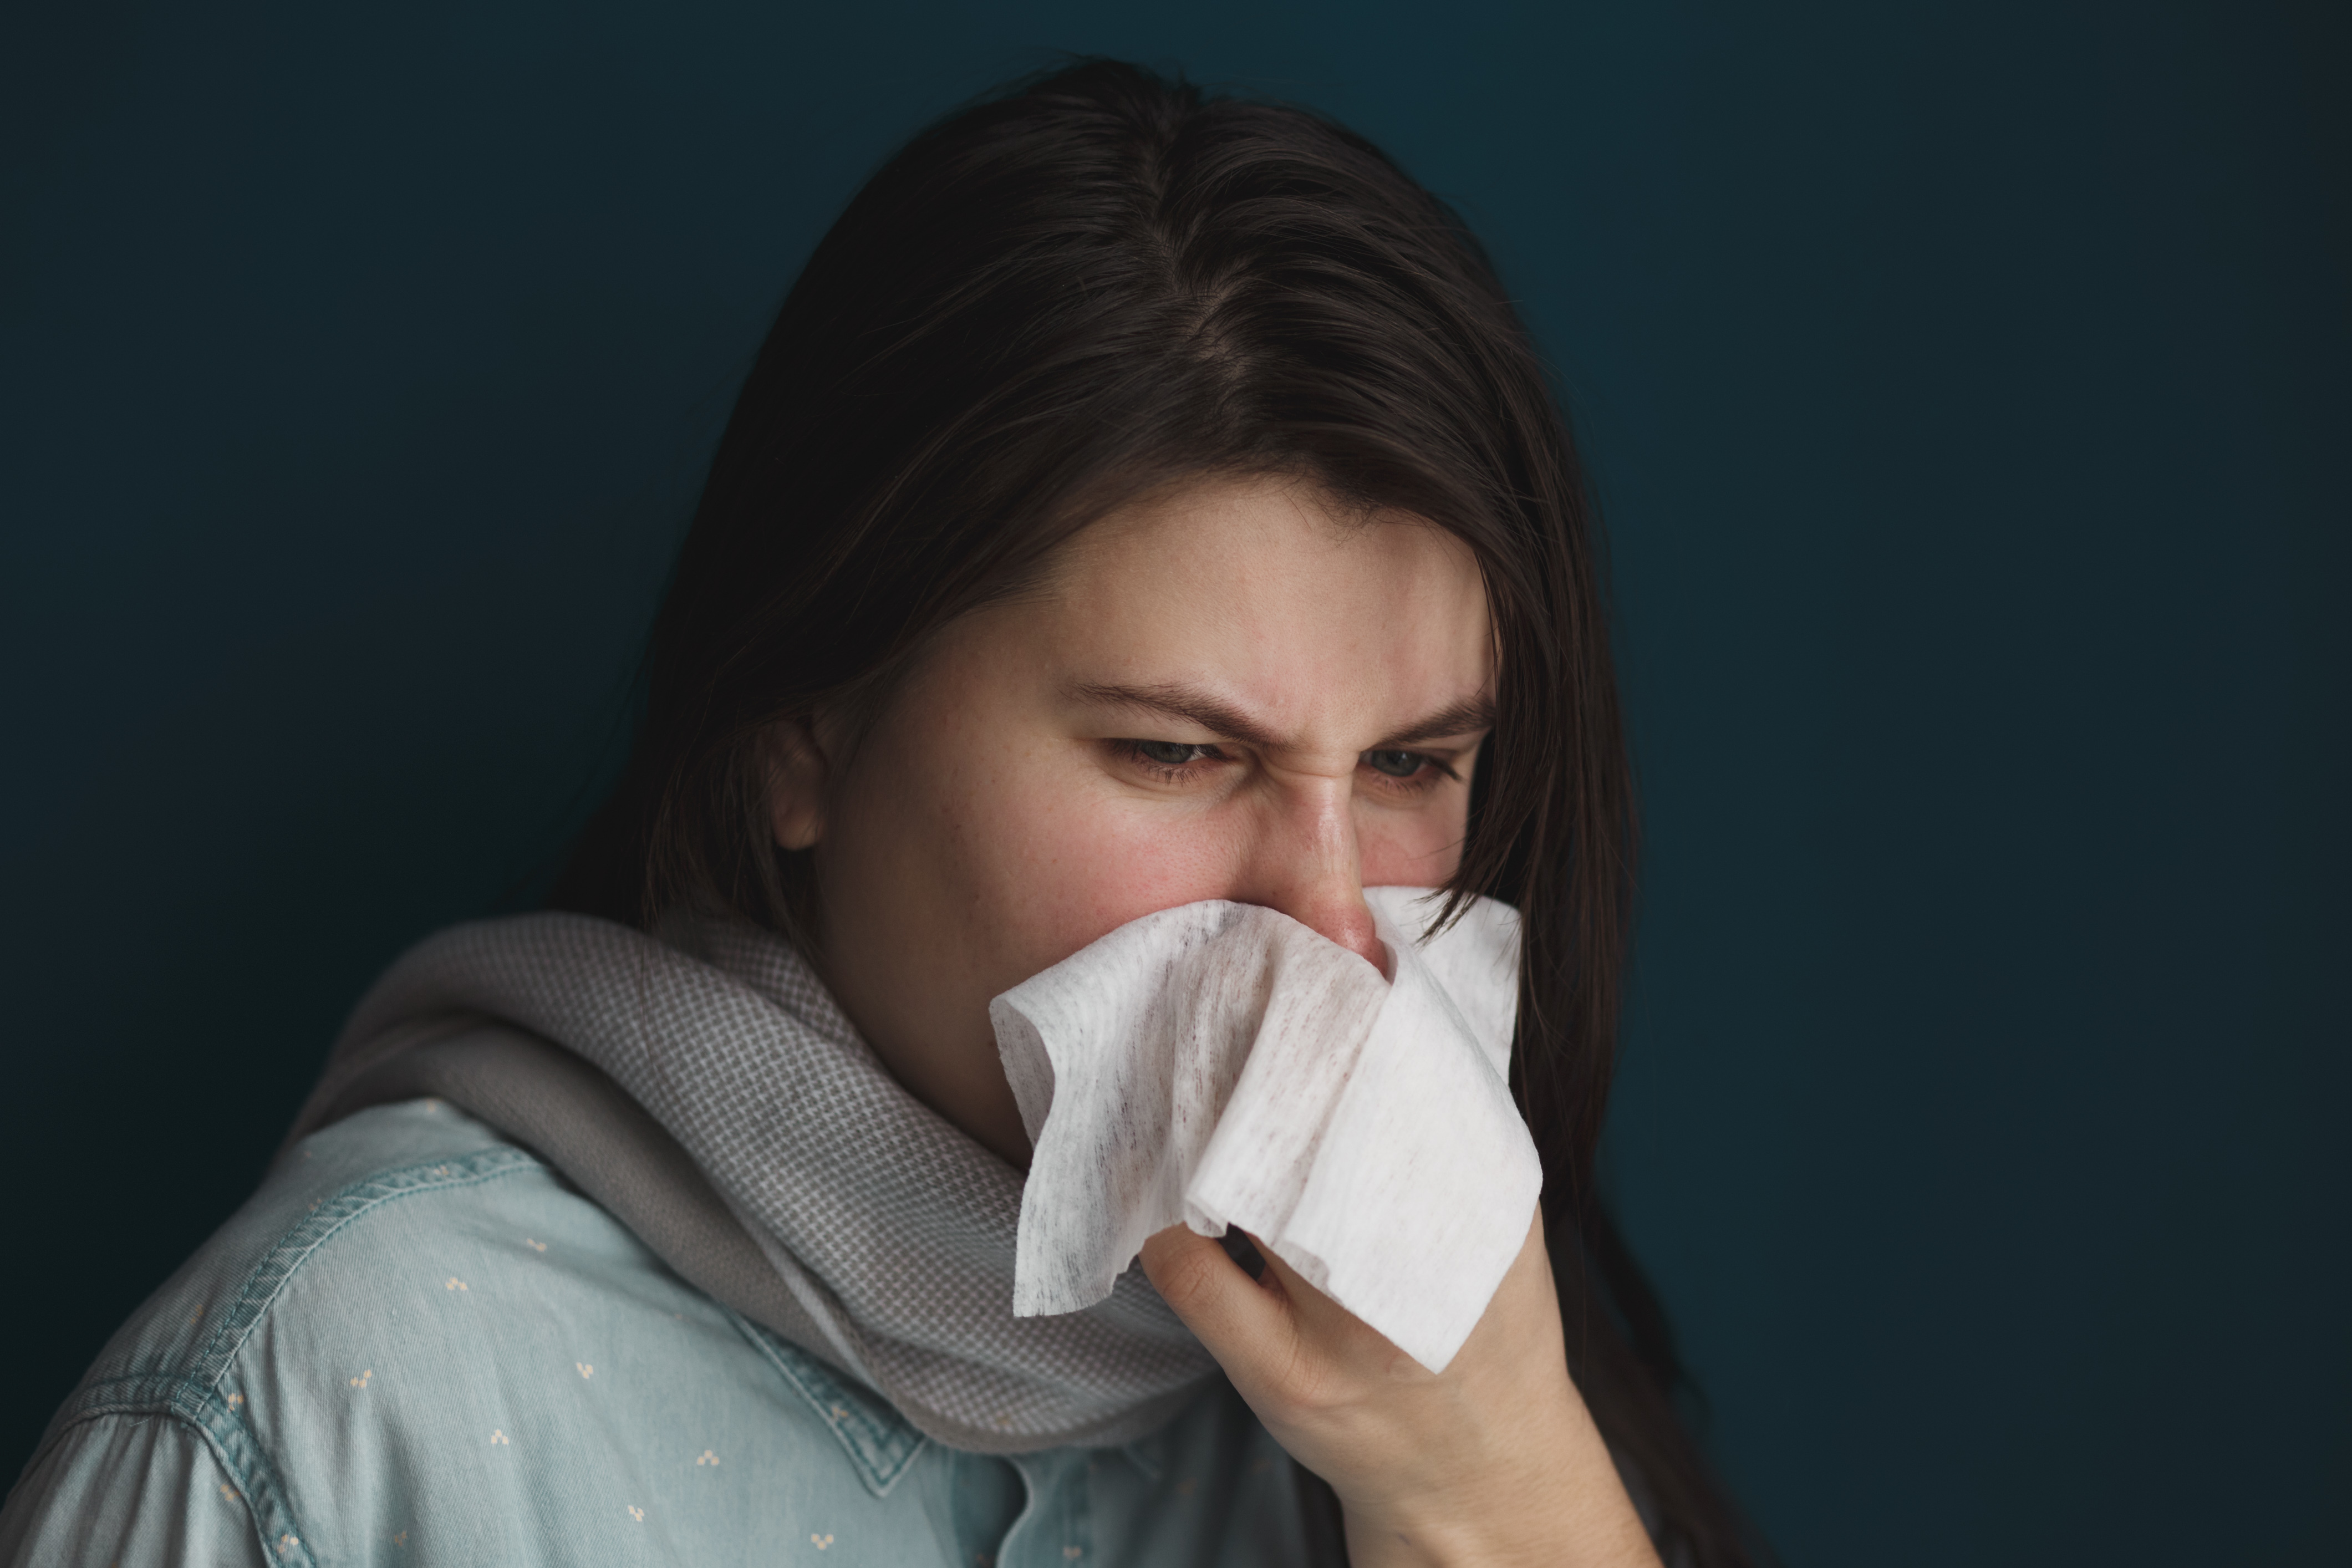 10 Causes of a Runny Nose & How to Stop a Runny Nose | Buoy